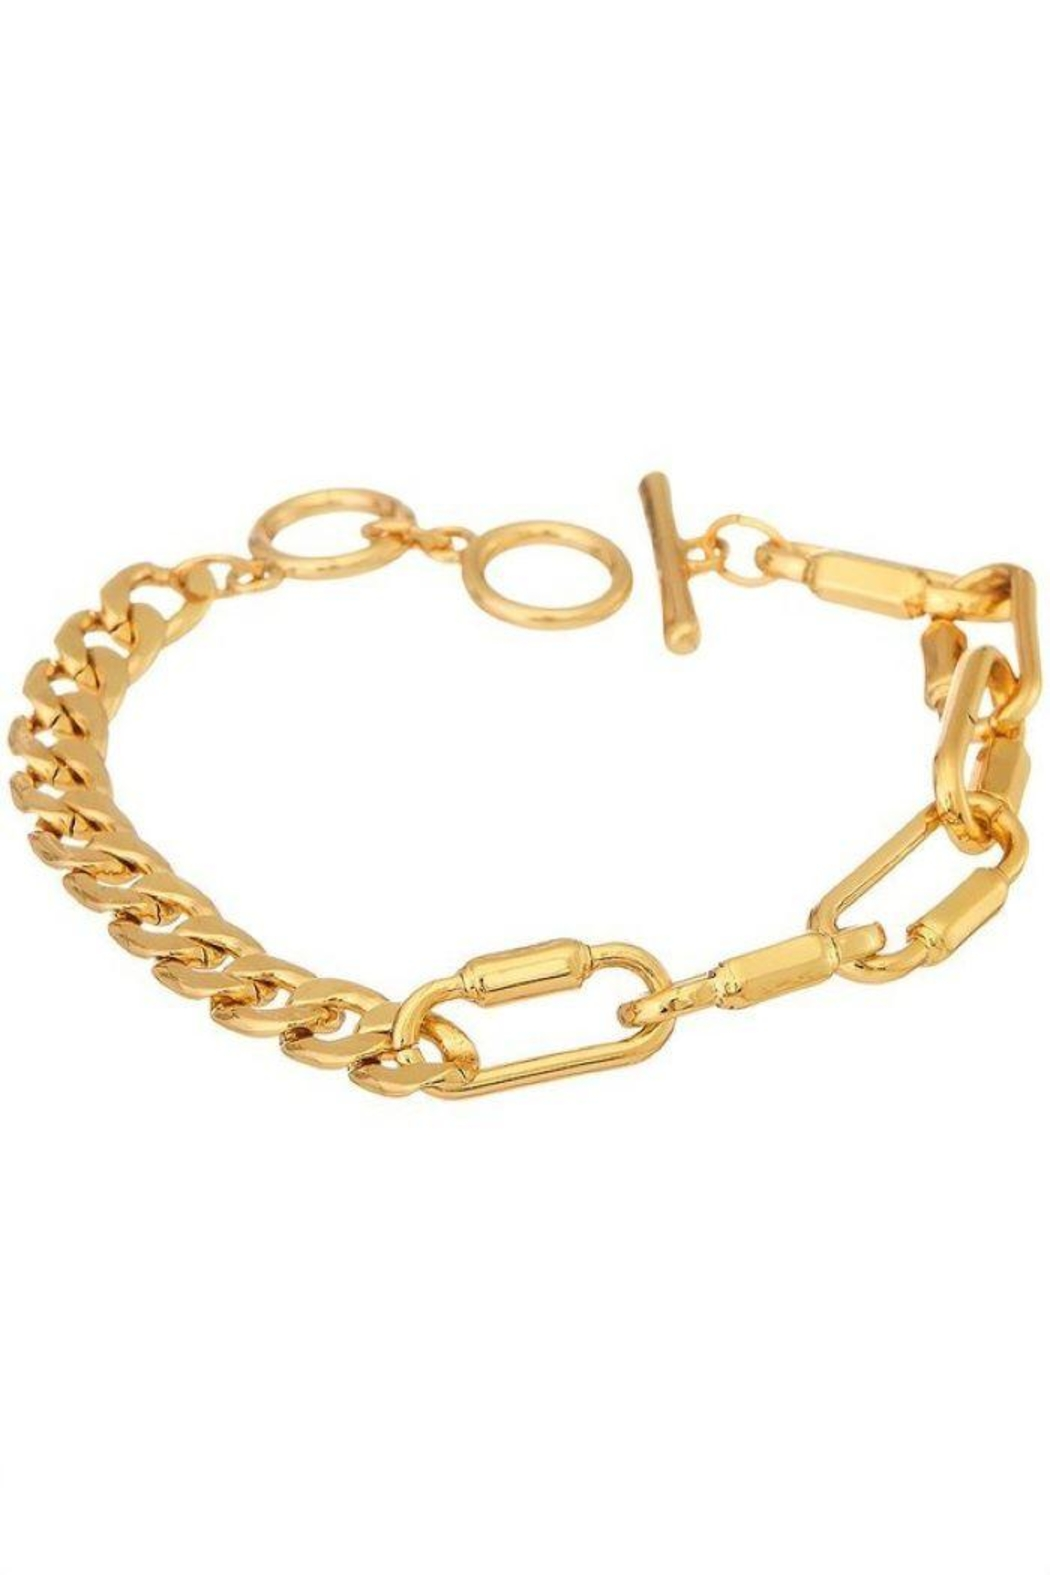 Ana Accessories Gold Plated Chain Bracelet - Main Image